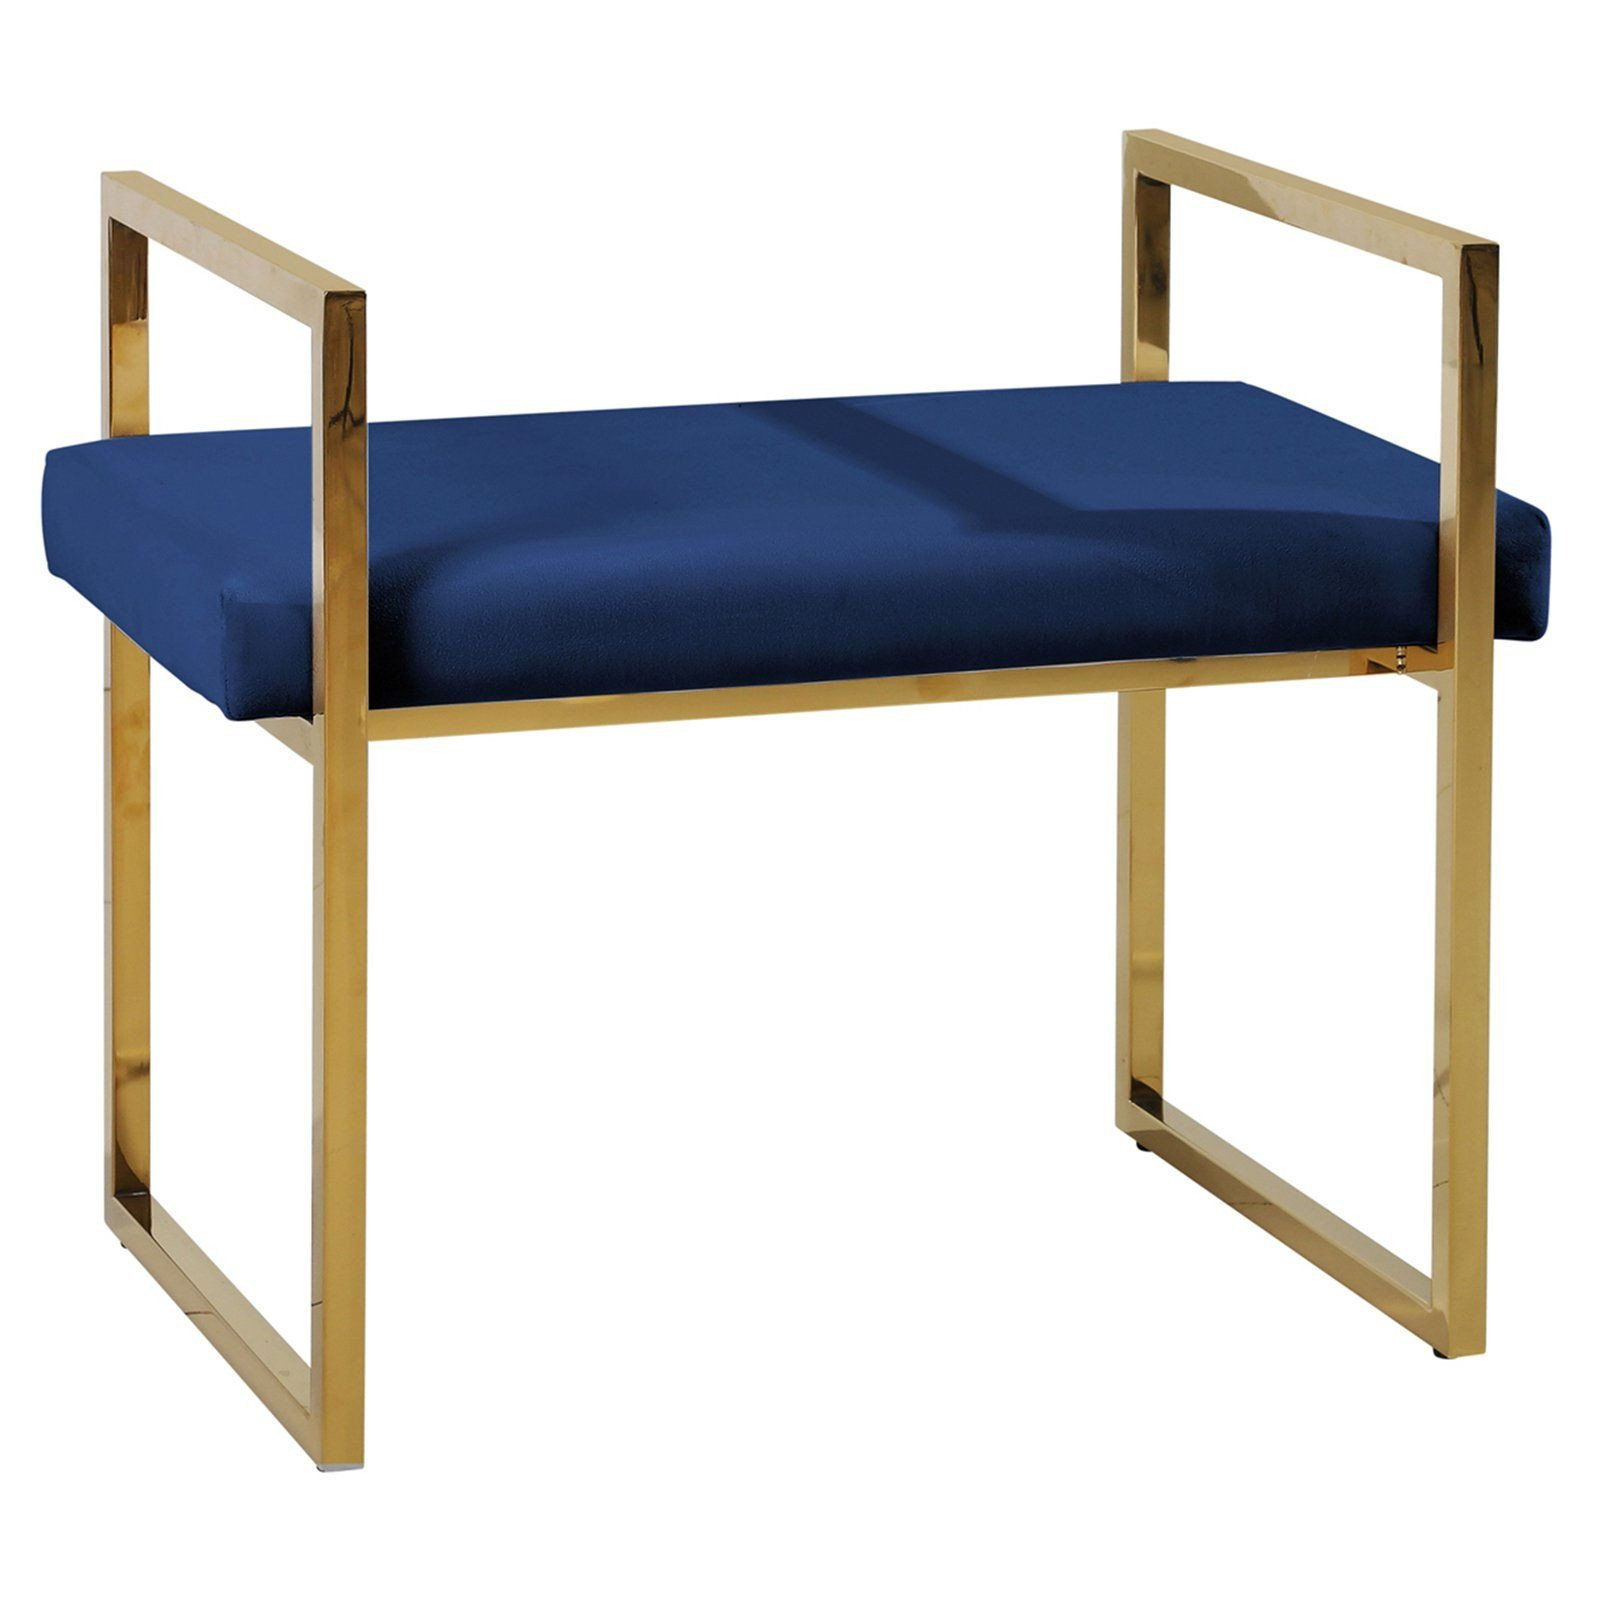 Bedroom Benches for Sale Fresh Sagebrook Home Velveteen Bench with Handles Blue Gold In